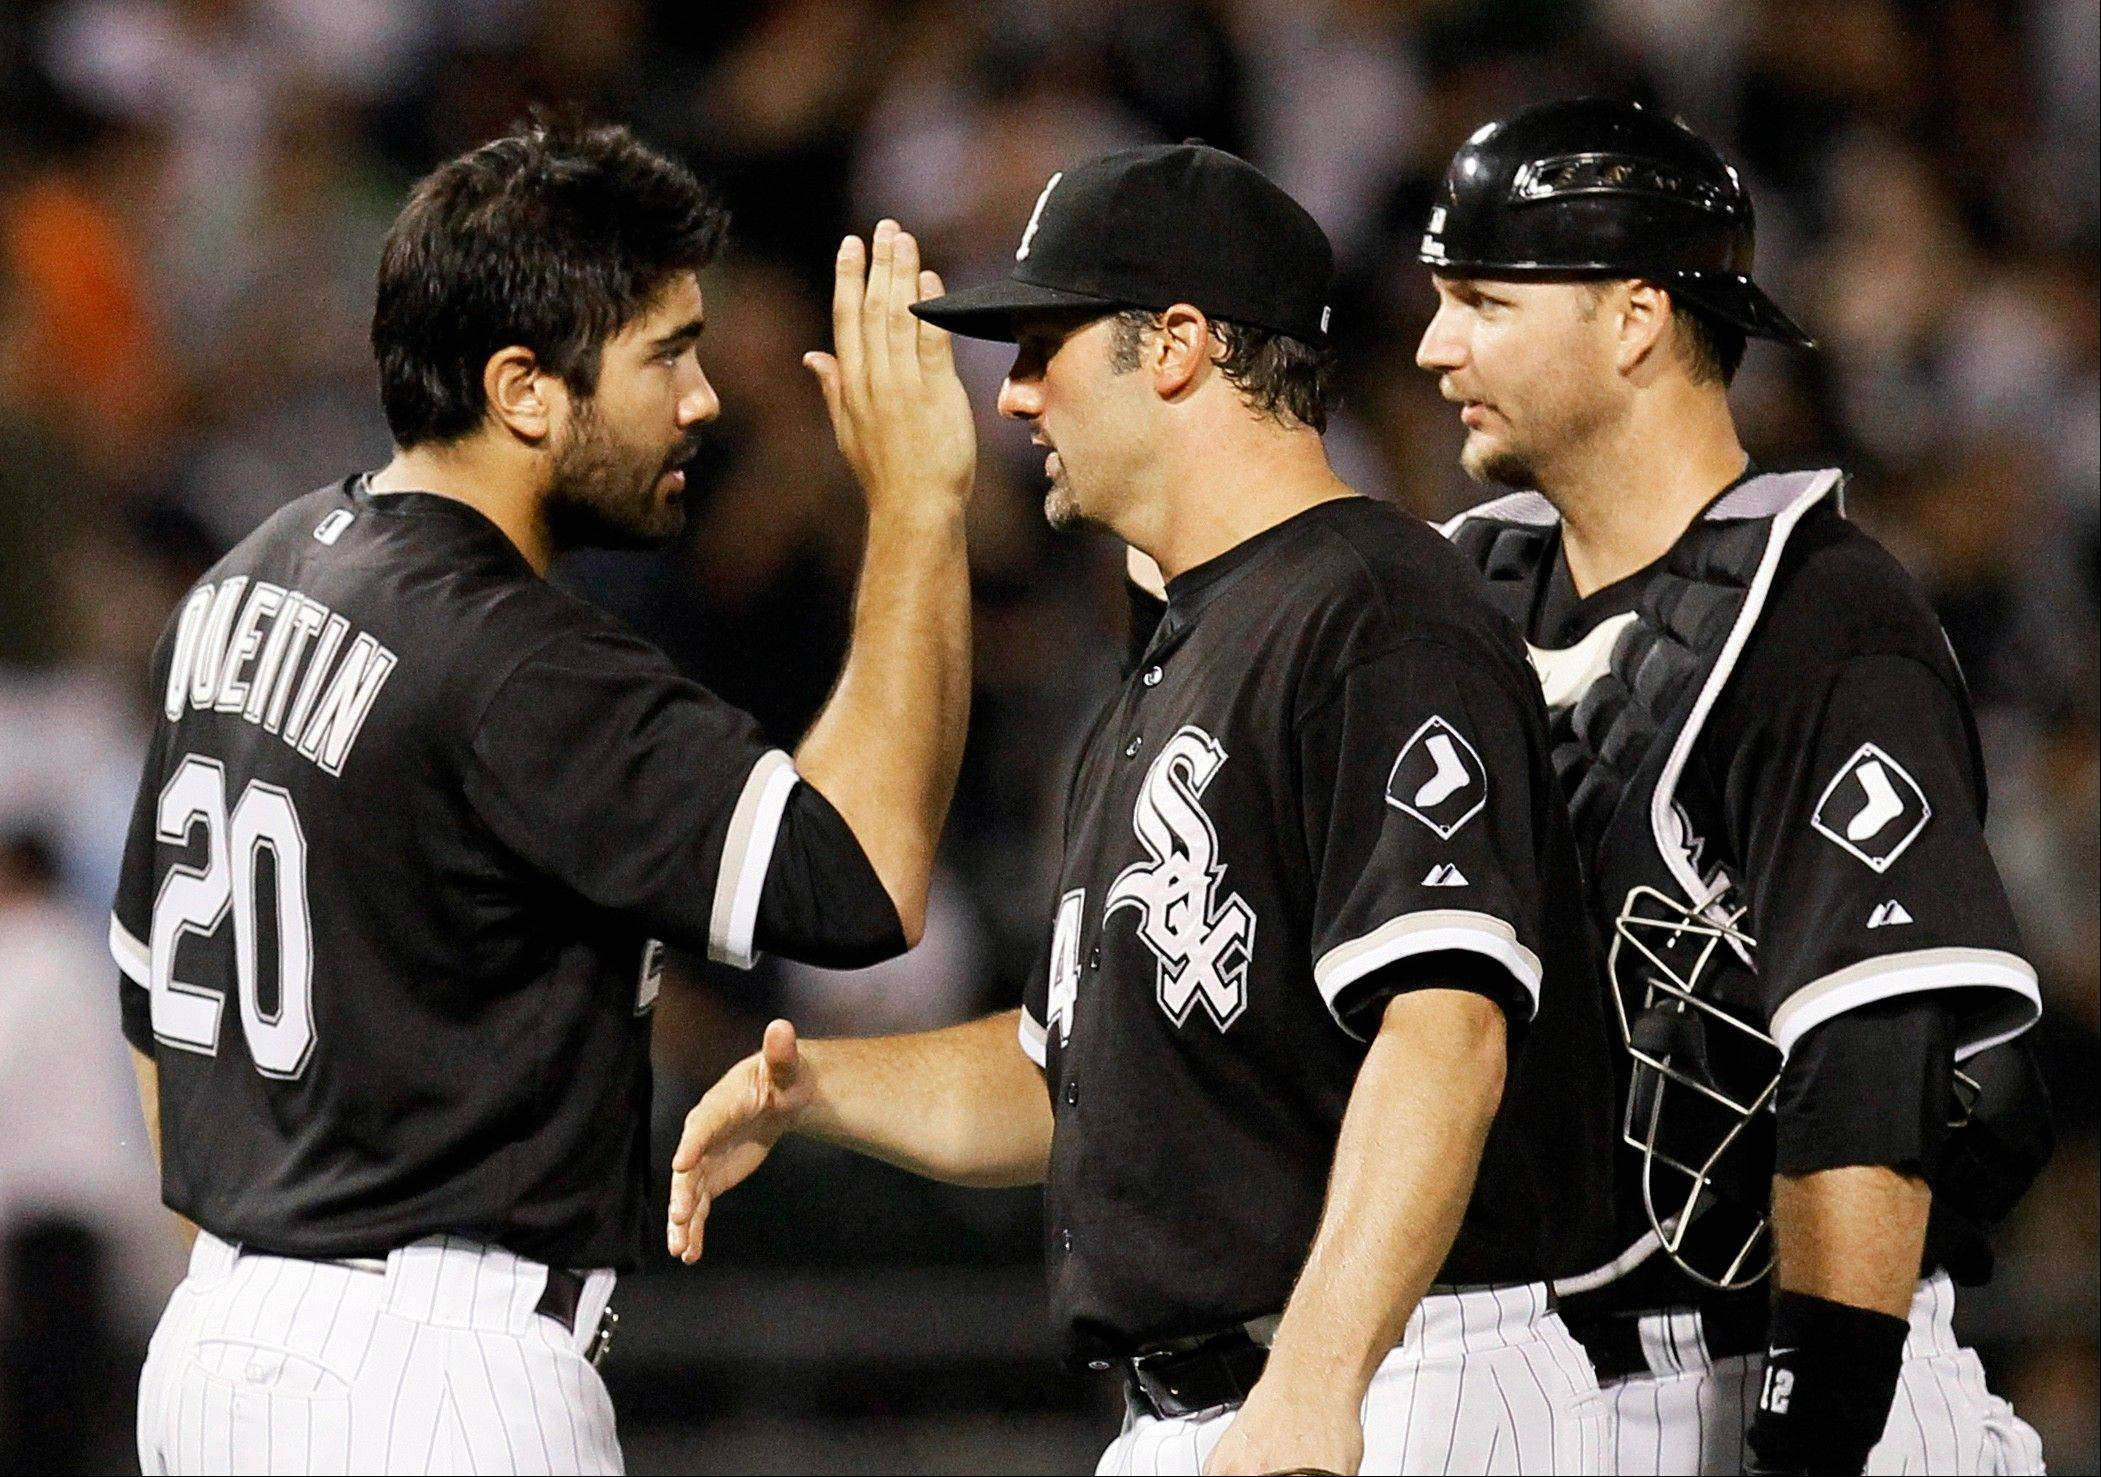 Sox outfielder Carlos Quentin, left, celebrates Monday with Paul Konerko, center, and A.J. Pierzynski after Chicago's 6-3 win over the Detroit Tigers.